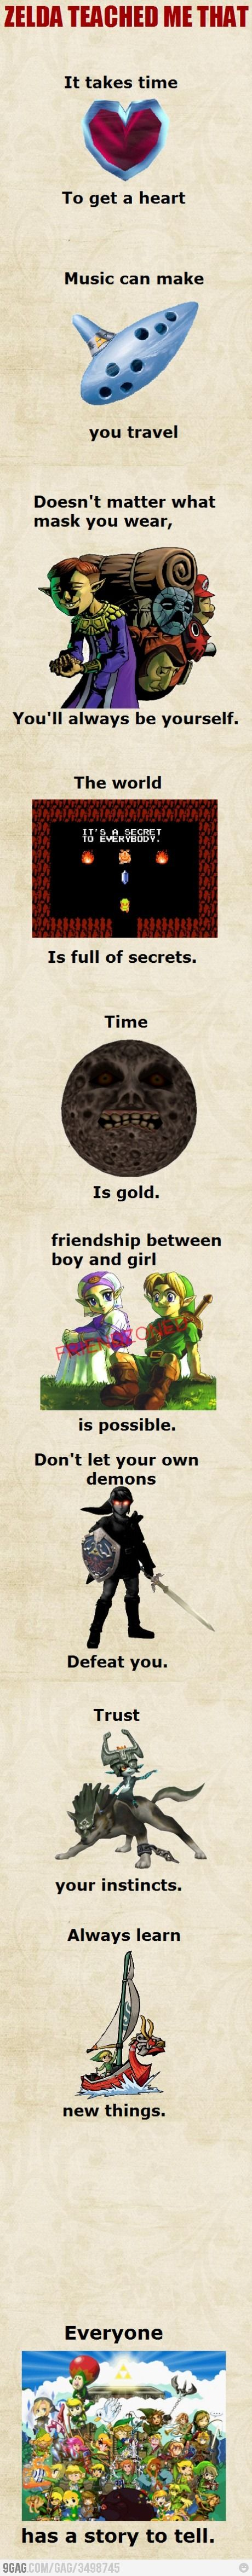 just......legend of zelda.  I didn't make it myself so everyone stfu with the grammar!